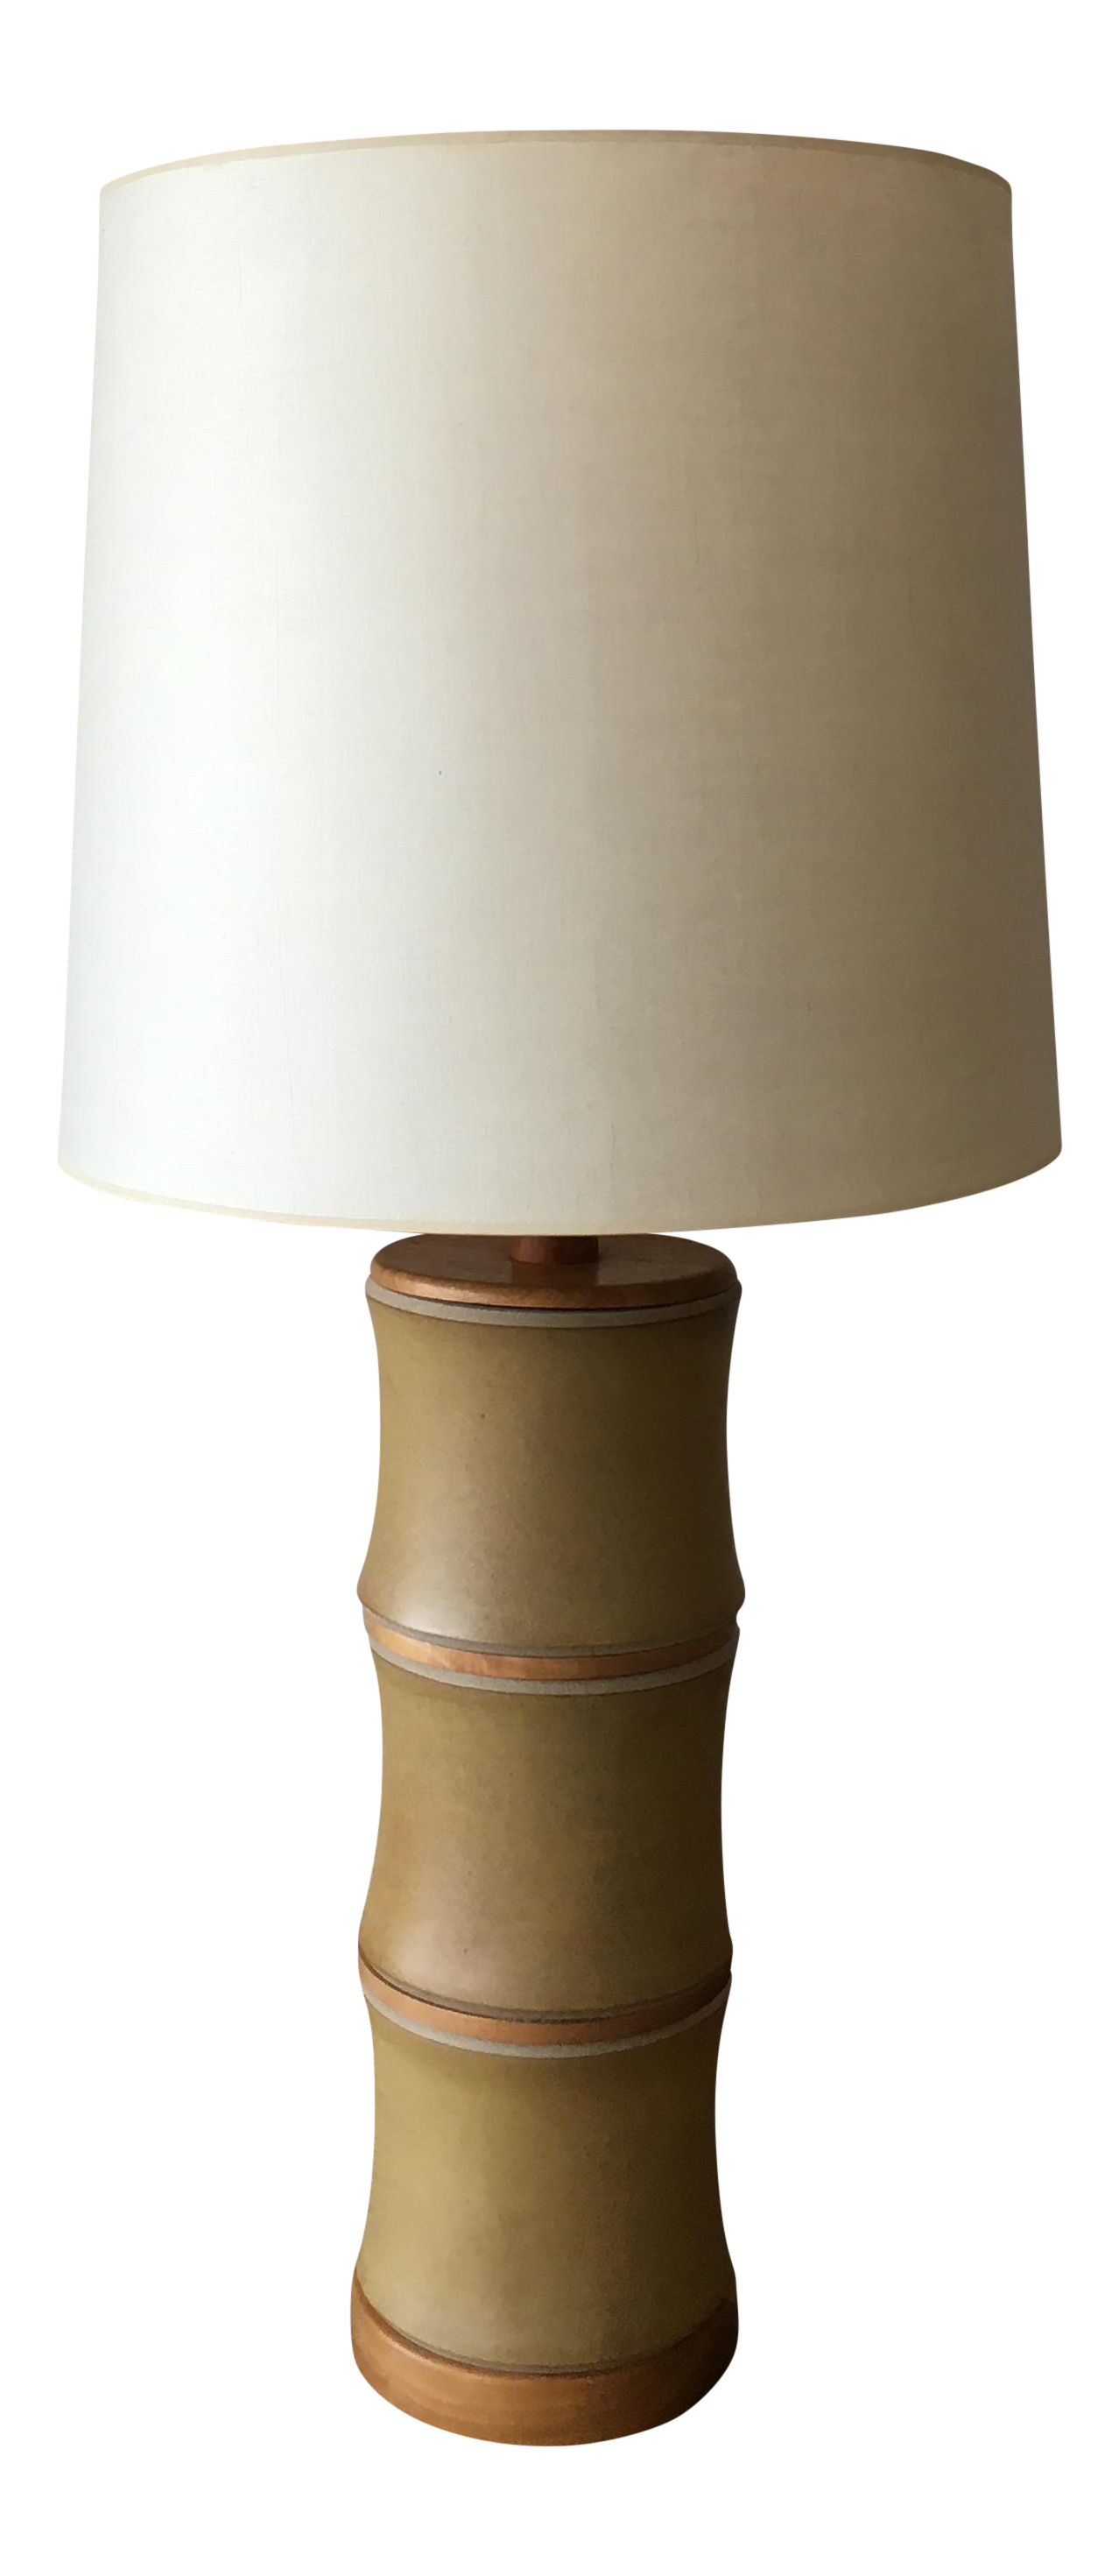 shelvia products ashley signature lamps style lamp white ceramic table design item antique vintage number by